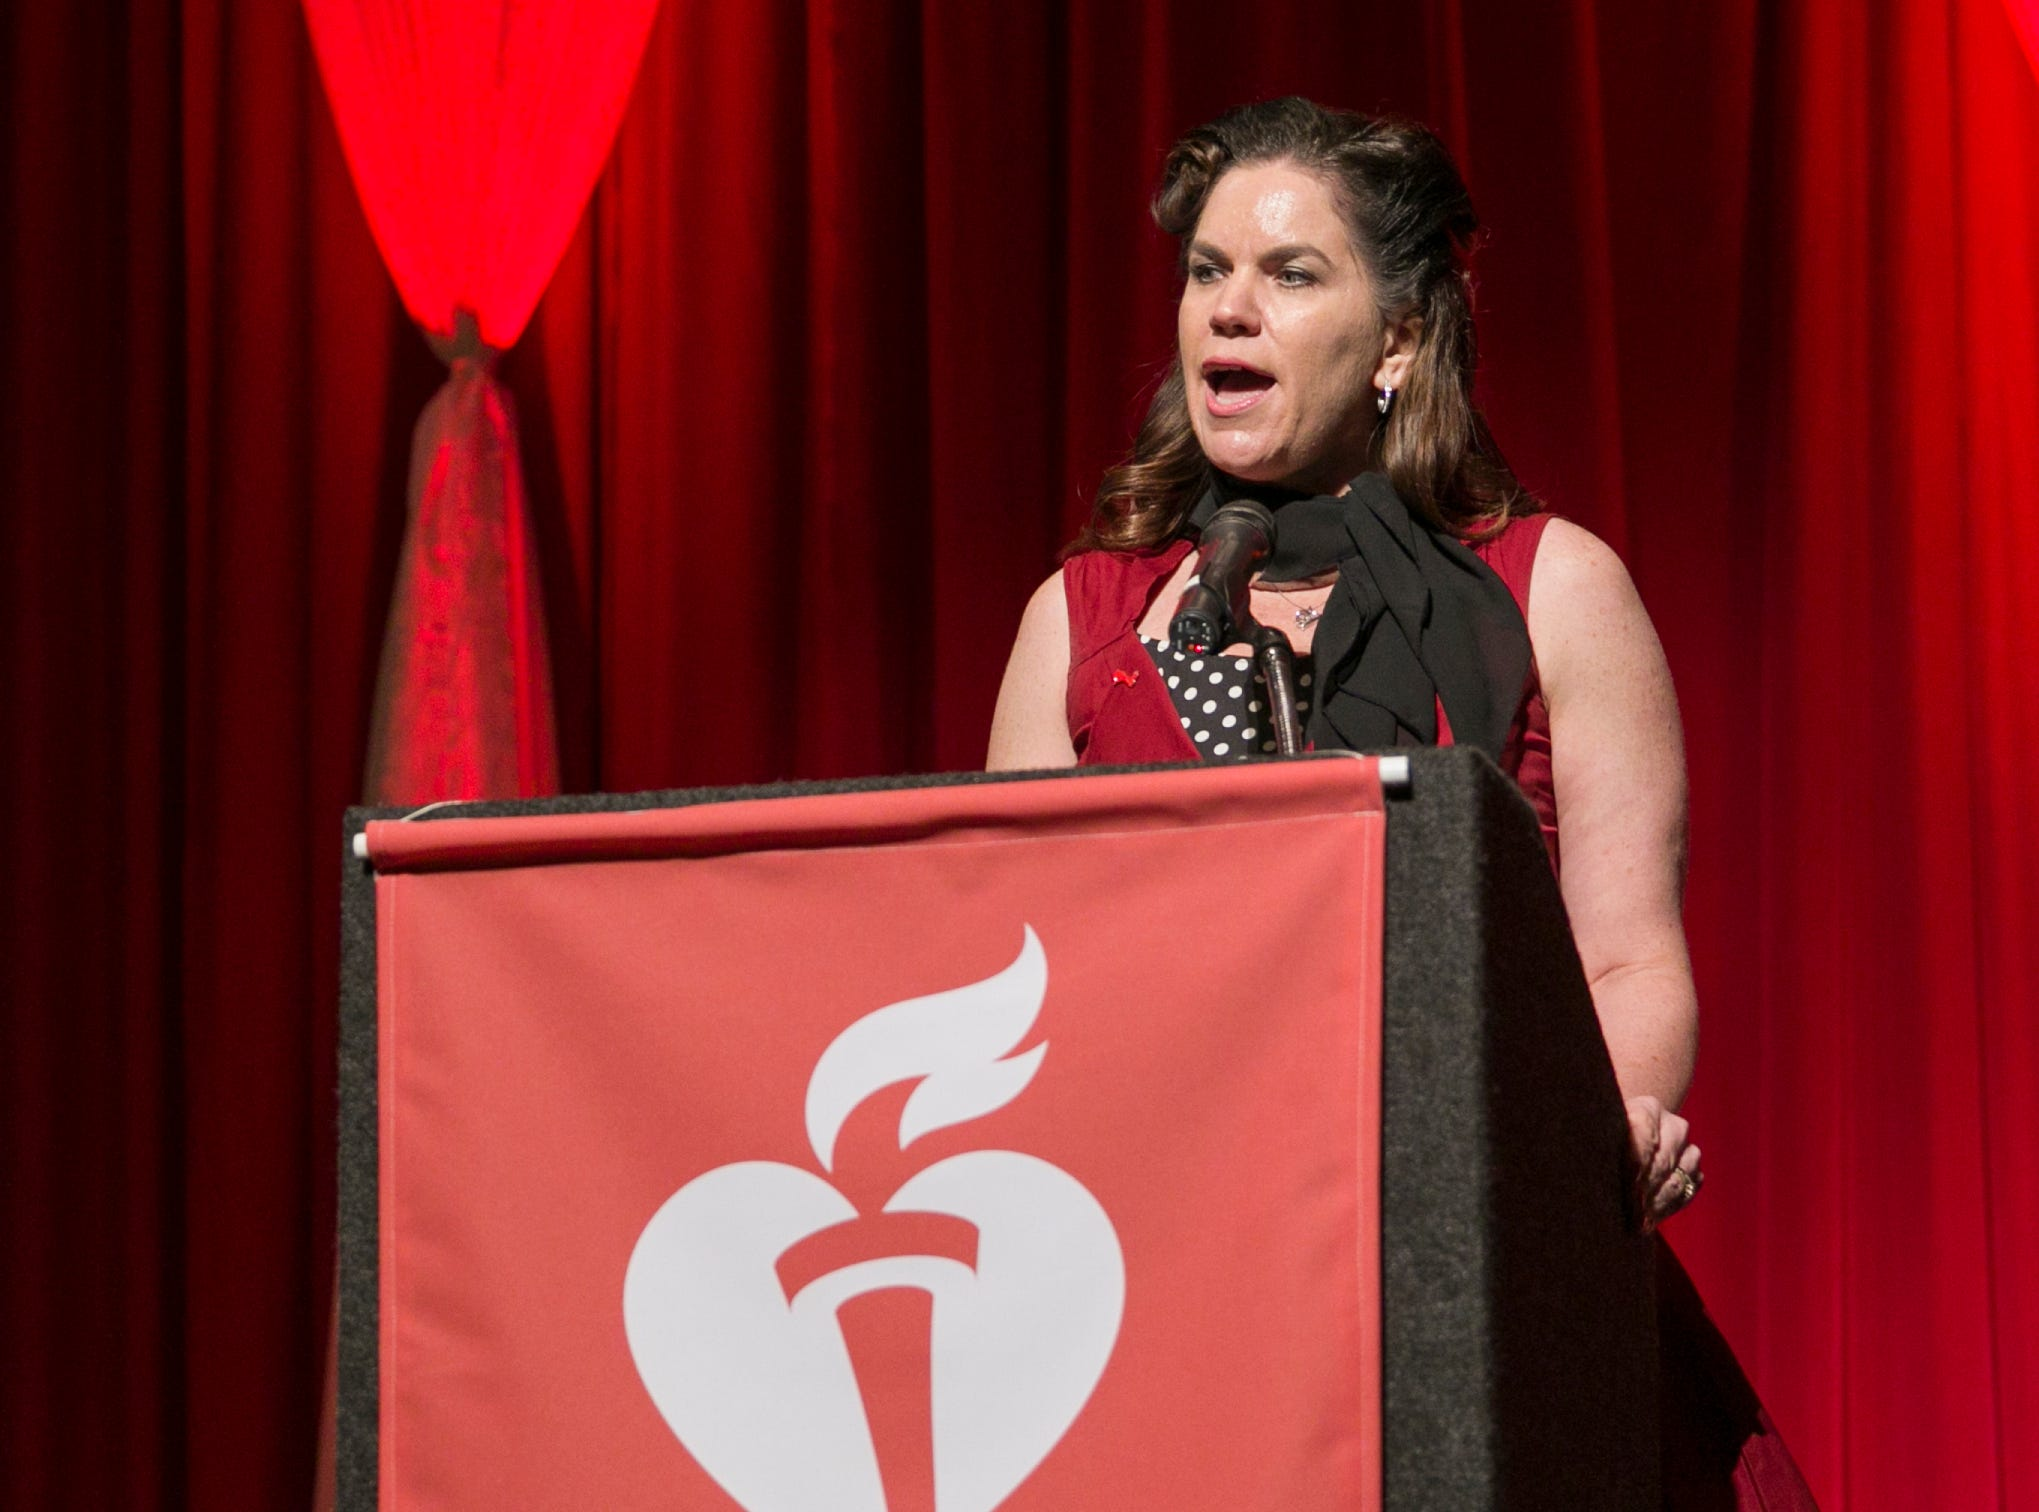 Meredith Williams speaks during the 15th Annual Go Red for Women Luncheon on Friday night,March 1, 2019 held at the downtown Reno Ballroom.